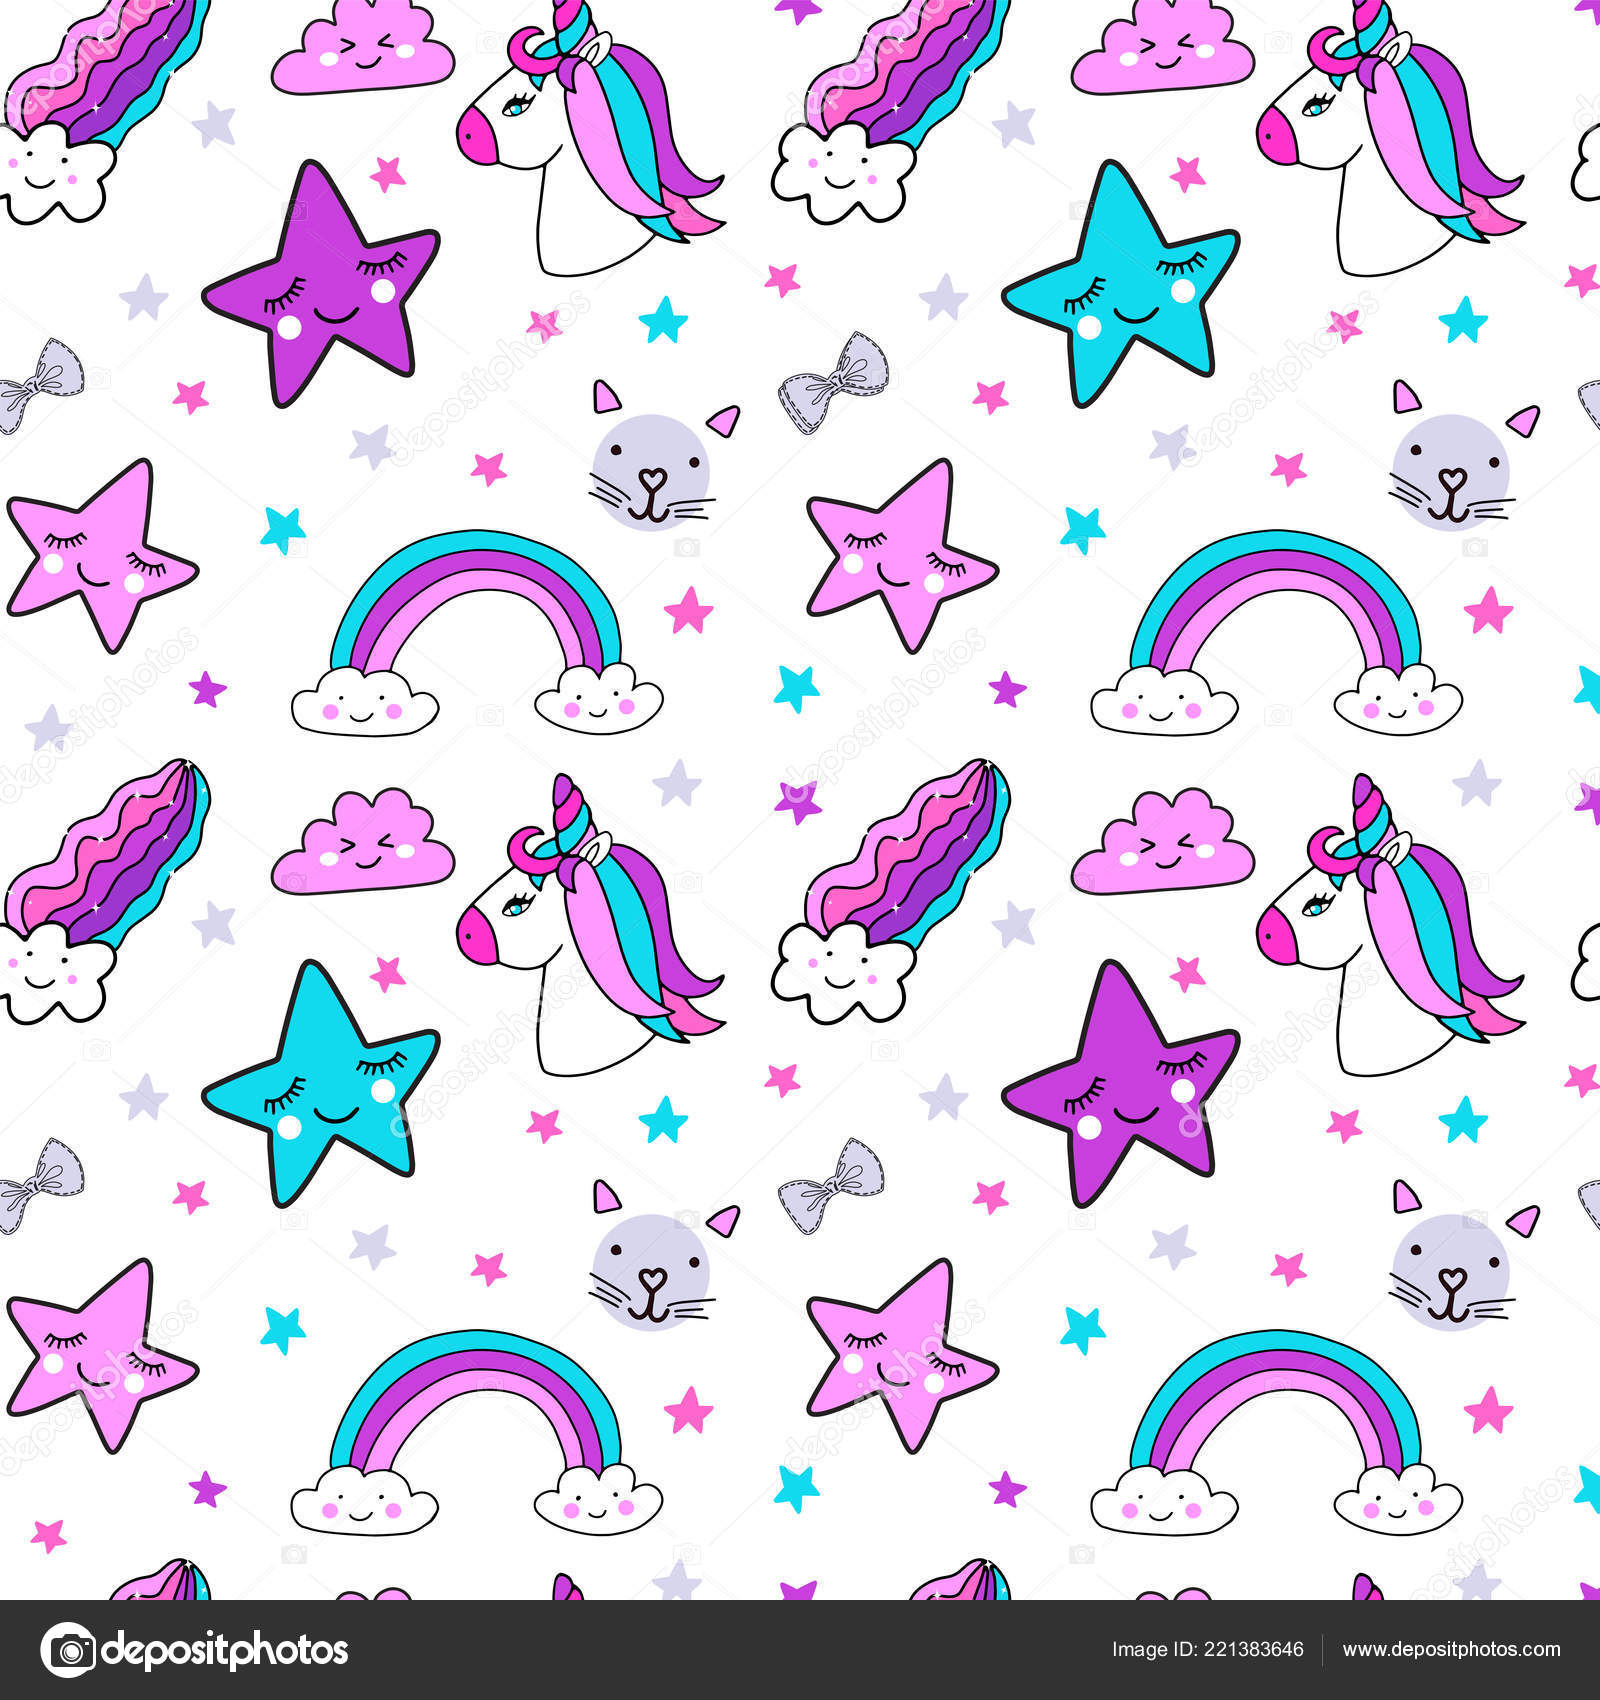 Cute bright colors unicorn and girly elements stars, rainbow, cats and bows seamless pattern background.